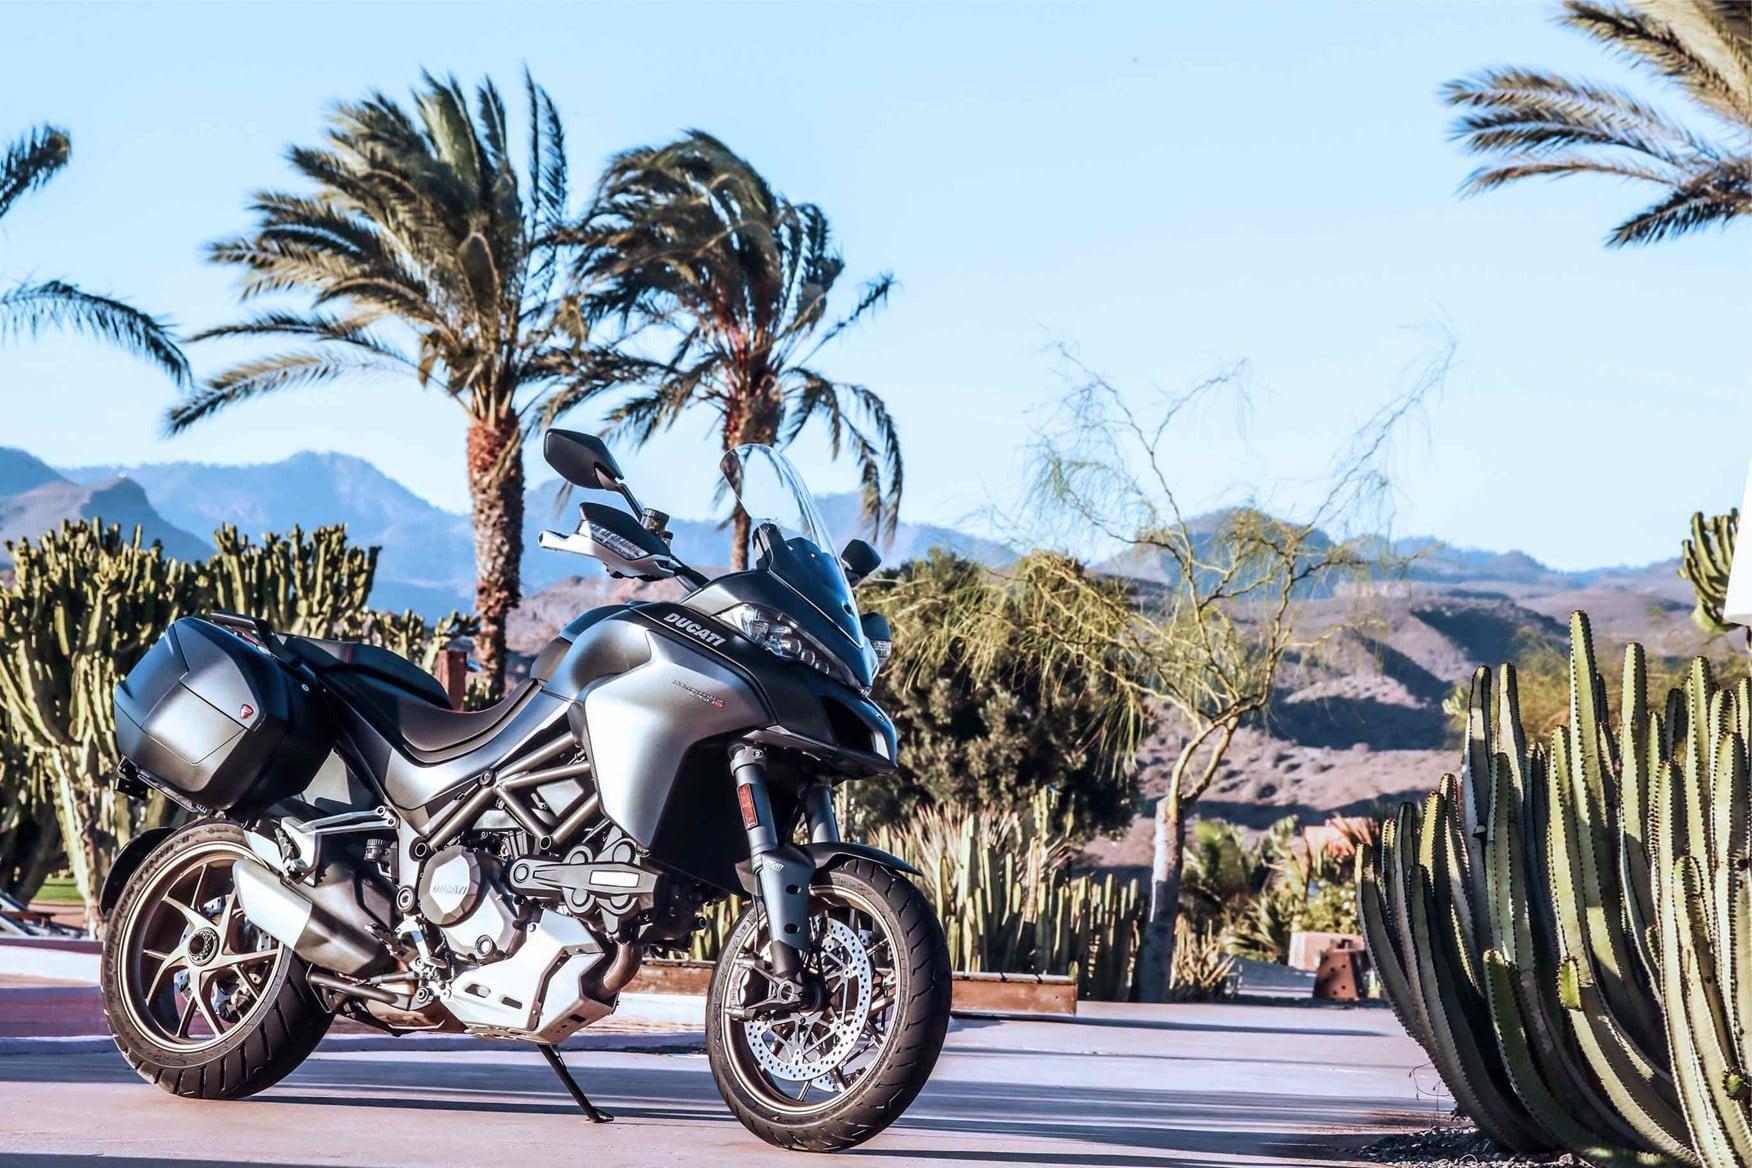 2018 Ducati Multistrada 1260 S and palms